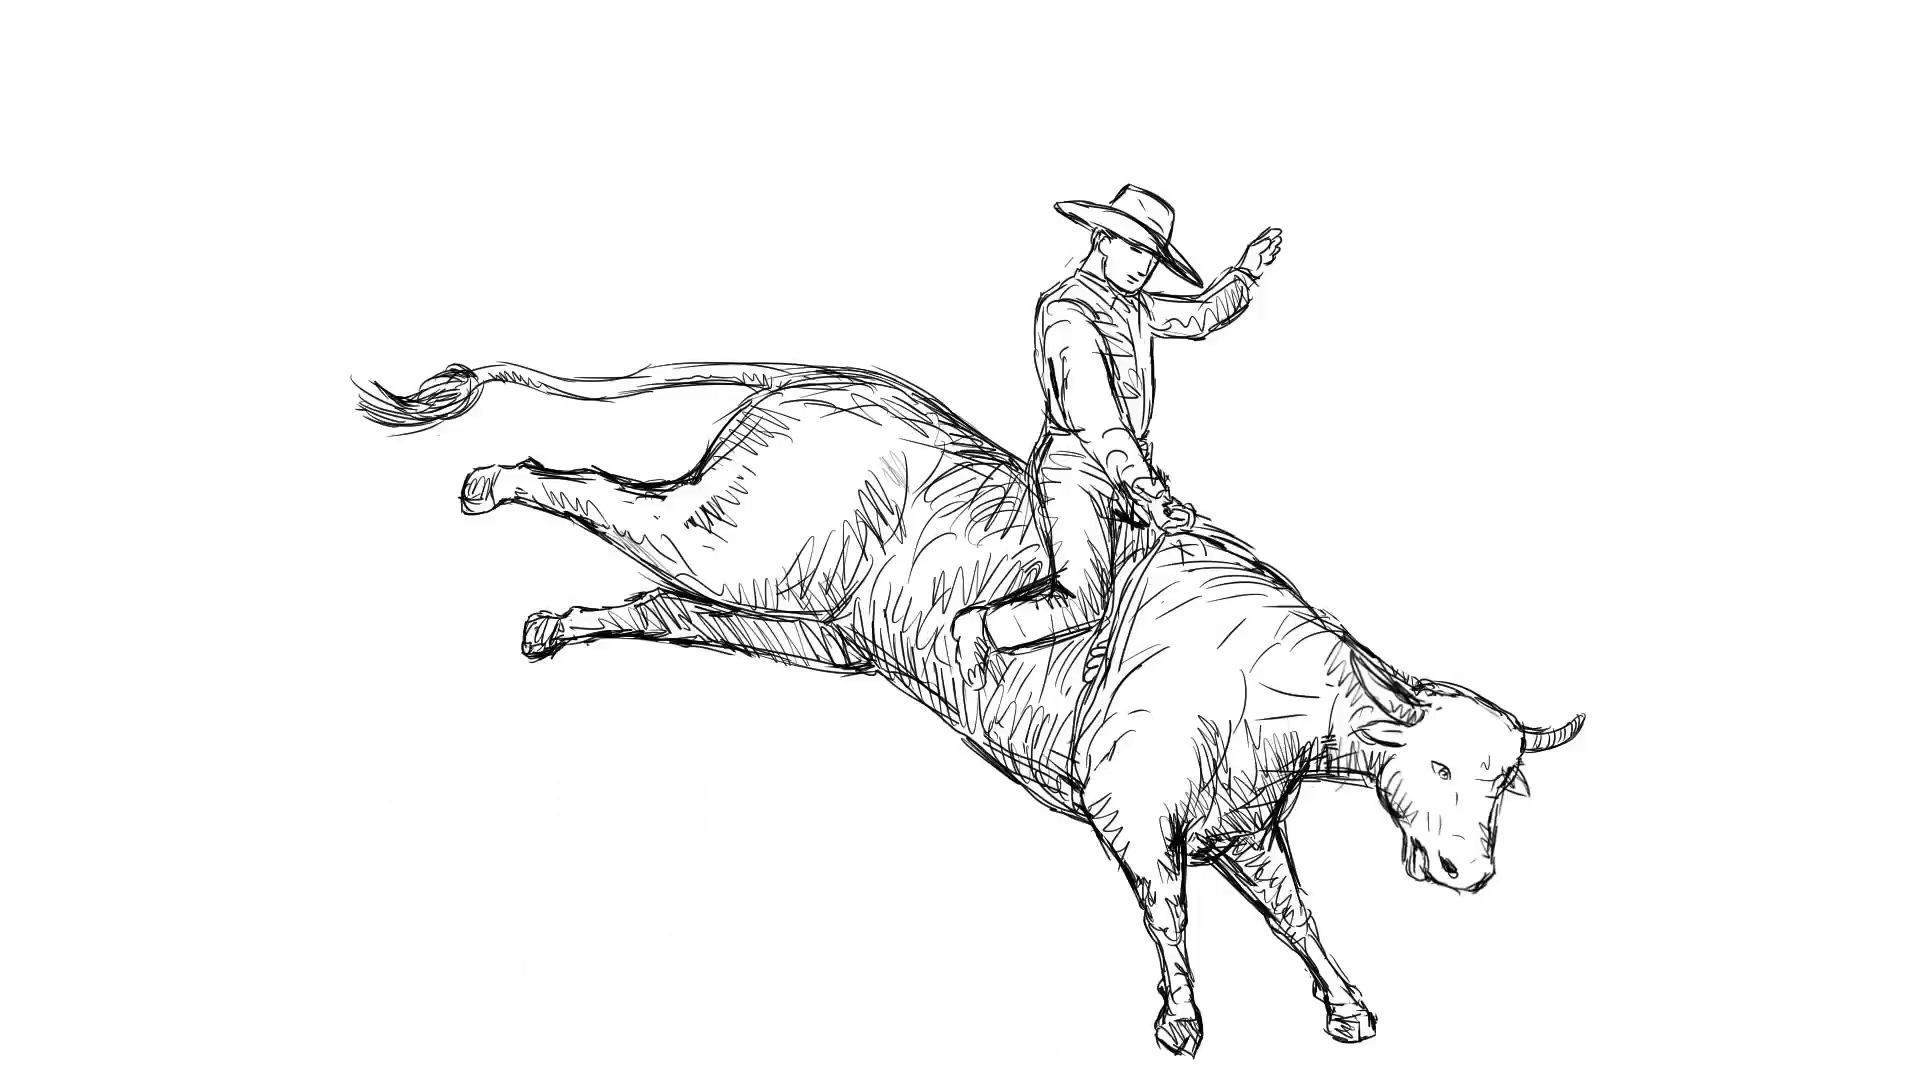 1920x1080 2dnimation Motion Graphics Showing Rodeo Cowboy Riding